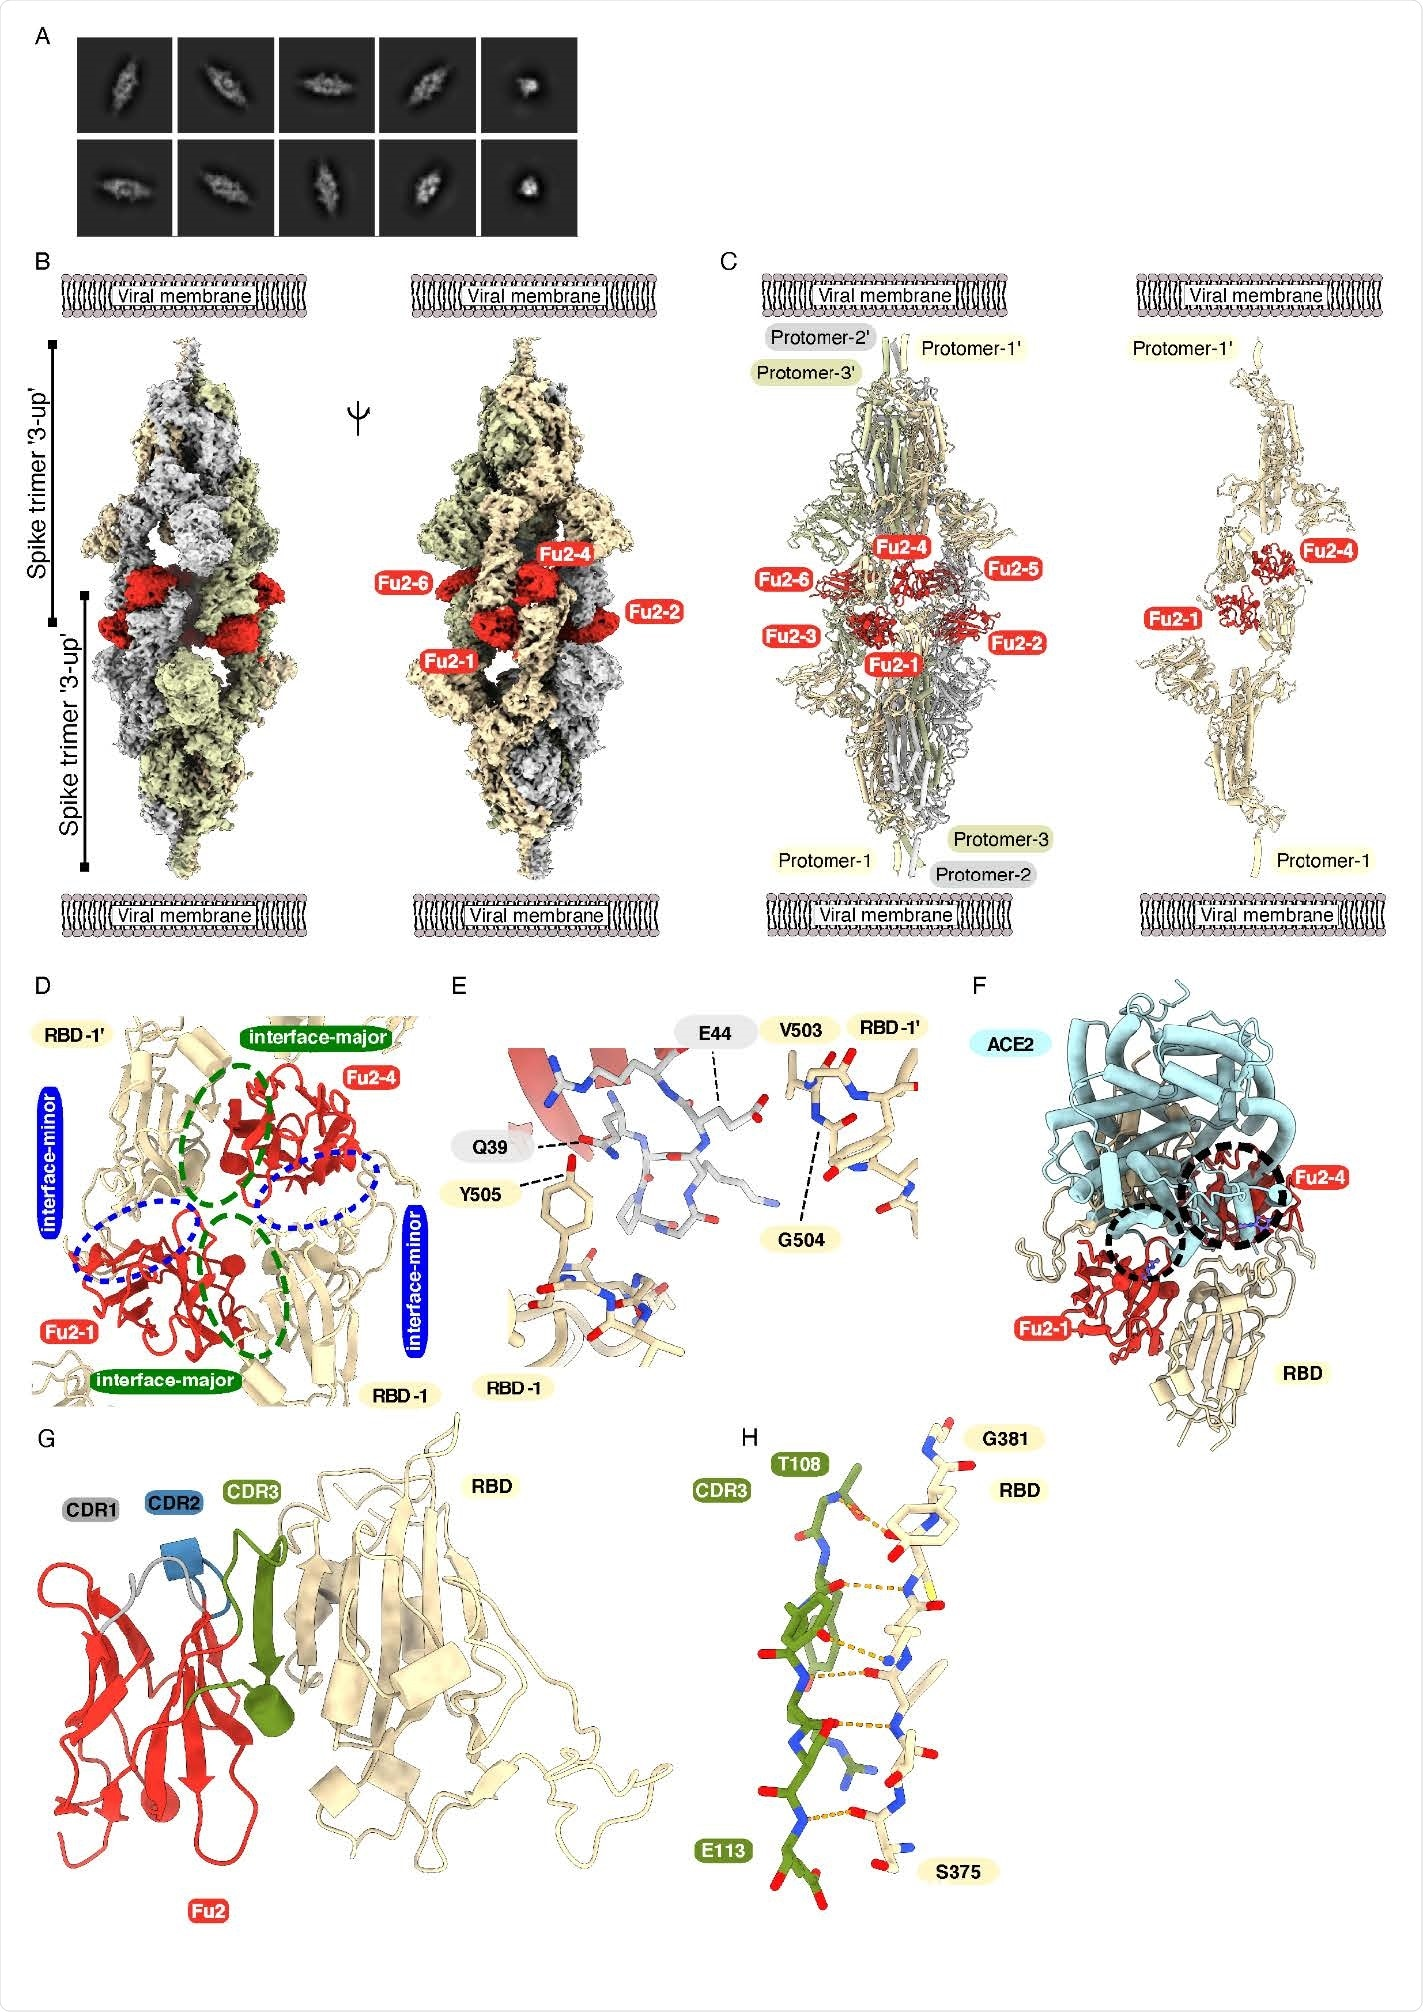 Cryo-EM provides structural evidence of Fu2-mediated dimerization of trimeric spike in '3-up' conformation (A) Representative 2D class averages. (B) Cryo-EM map (two different side views) and (C) Atomic model of 'dimeric' spike in complex with Fu2; and two opposite protomers with two Fu2 molecules. Both spike trimers in the complex are present in '3- up' conformation (six Fu2 molecules are numbered). (D) Close-up view of the RBD-Fu2 interaction interfaces showing the interface-major and interface-minor. (E) A b-hairpin (gray sticks) from the Fu2 framework region (residues 39-45) contacts two RBDs simultaneously in the Fu2-mediated spike trimer-dimer. (F) Modelling of simultaneous spike-Fu2-ACE2 binding shows that Fu2 blocks the binding of ACE2 to the RBD from two directions. Clashes marked with dashed circles. (G) Fu2 binds the RBD through an extended inter-chain b-sheet interaction mediated by the CDR3 region (green). CDR1 (gray) and CDR2 (blue) does not take part in RBD binding (H) Closeup of a part of the CDR3-RBD interface displaying the anti-parallel b-strand hydrogen bond pairing between the Fu2 CDR3 region and the RBD (light orange).